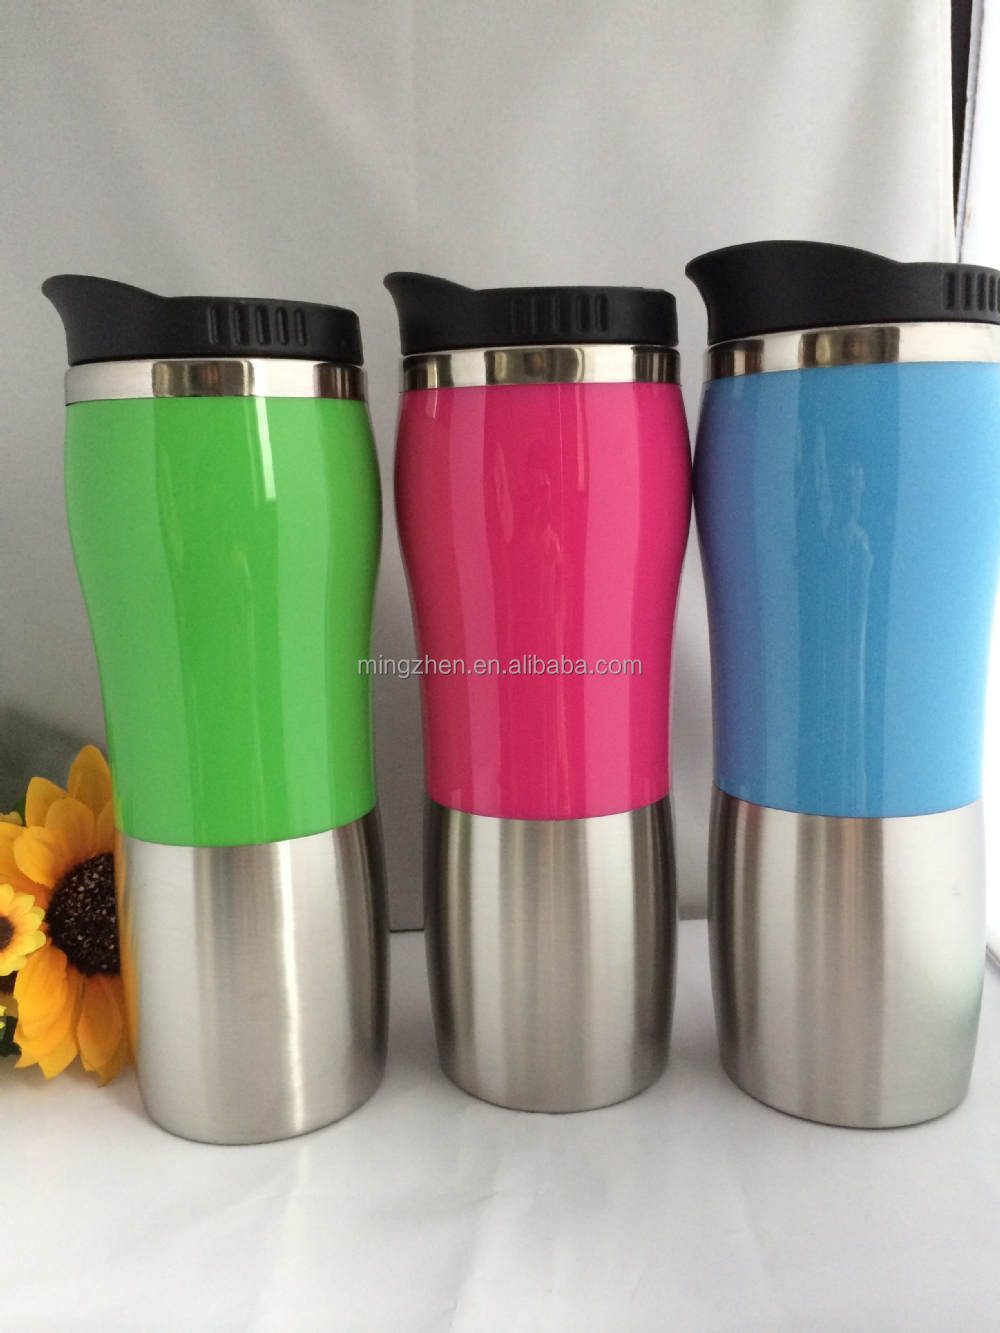 stainless steel 16 oz tumbler mug with flip lid 14oz insulated travel mug office desk coffee cup